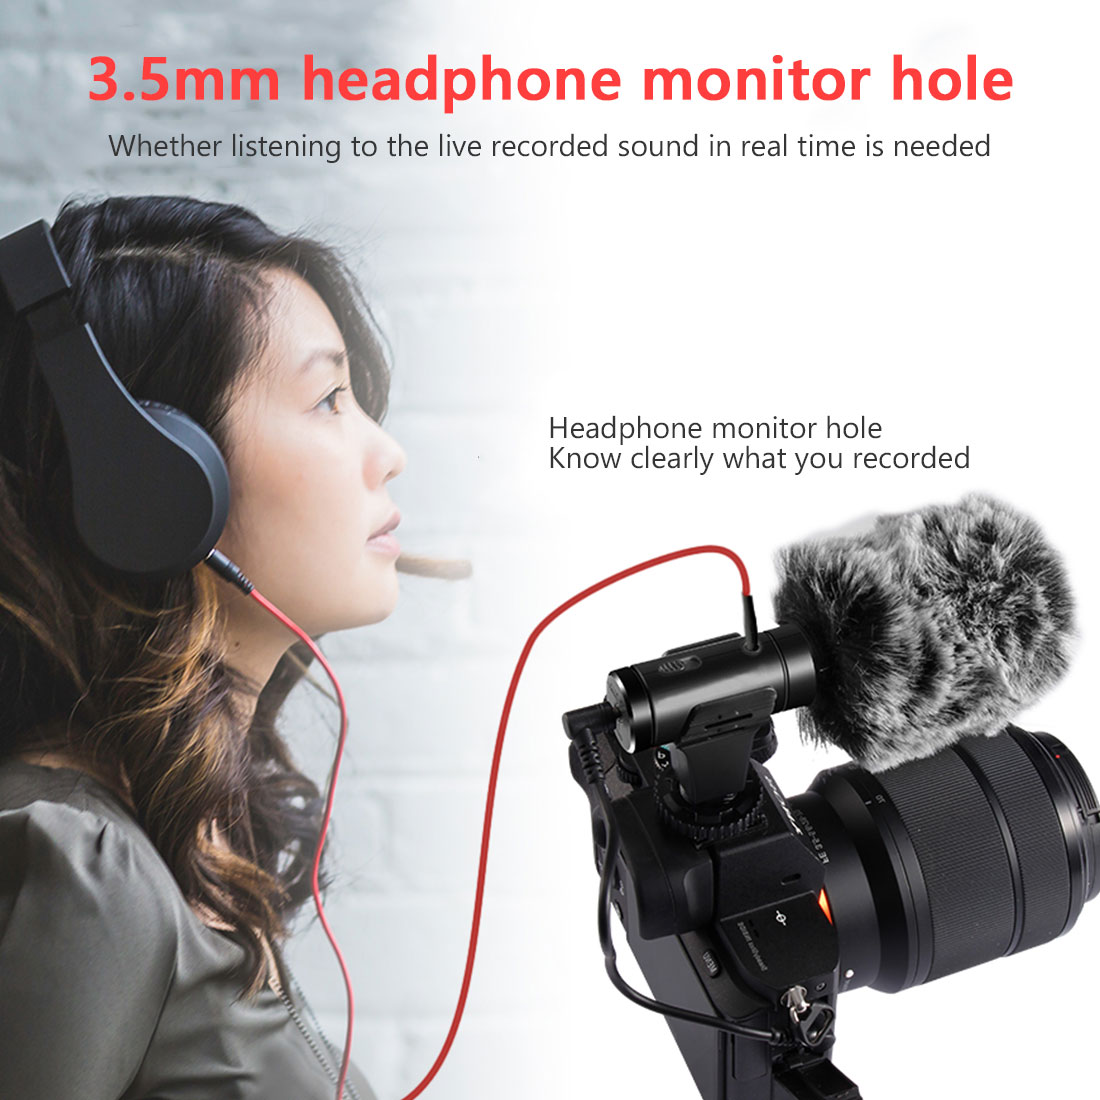 MIC-05/MIC-01/MIC-07/MIC-07PRO Recording Microphone 3.5mm Audio Plug Professional Camera For VLOG Video Photography Interview enlarge